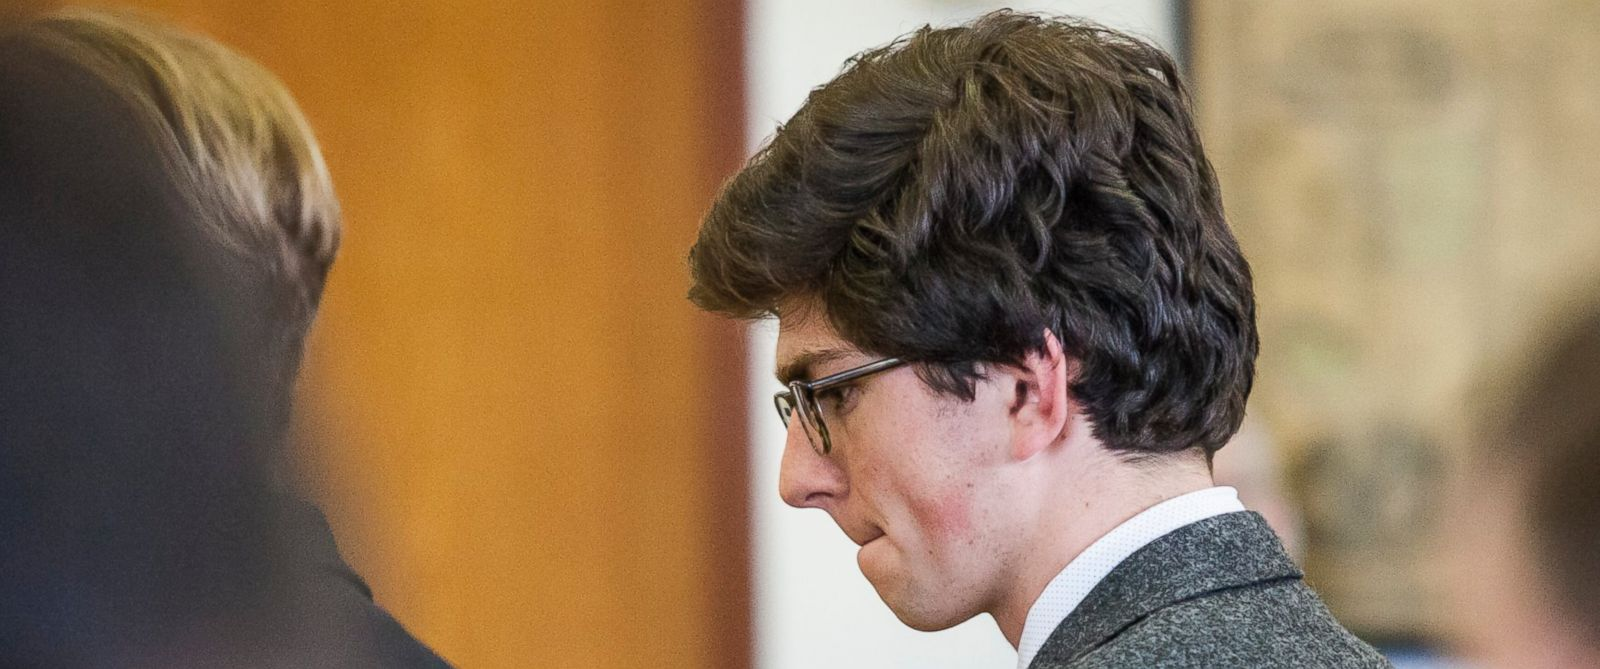 PHOTO: Owen Labrie appears in Merrimack County Superior Court in Concord, N.H., on March 18, 2016. The judge in the trial revoked his bail and said Labrie would begin his one-year jail sentence immediately.